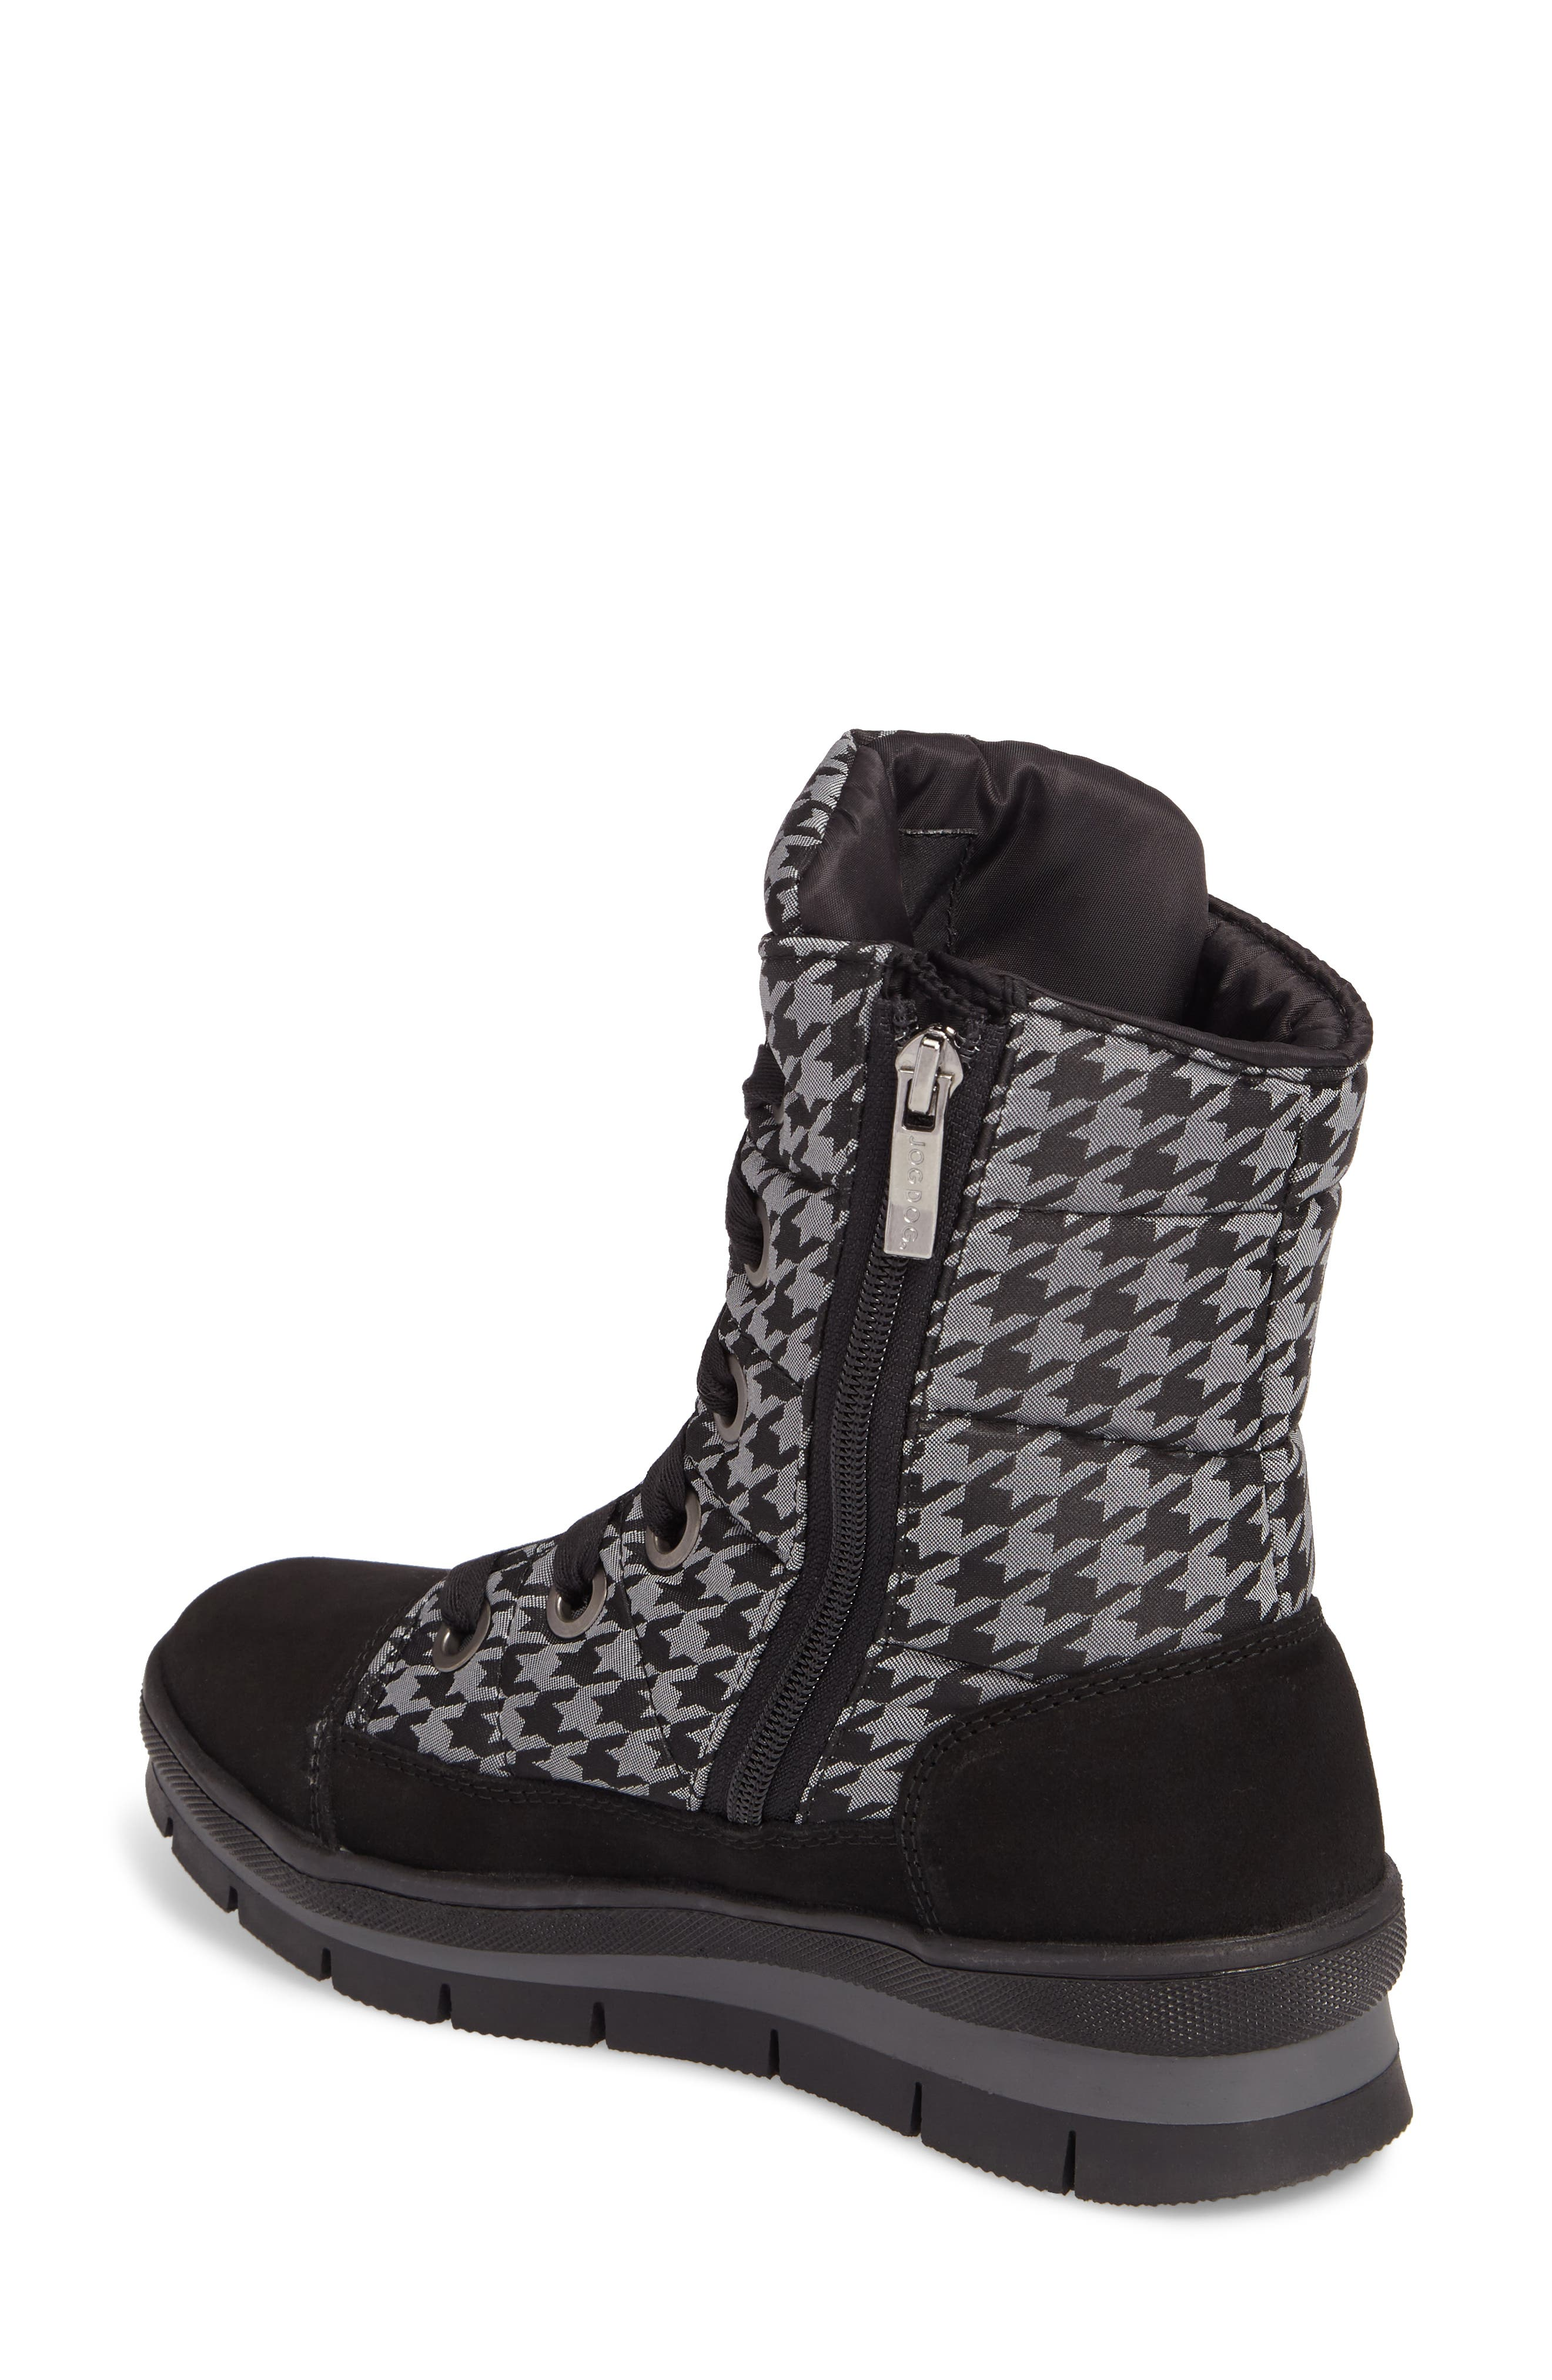 Meribel Waterproof Channel Quilted Lace Up Sneaker Boot,                             Alternate thumbnail 2, color,                             Black Pull Pied